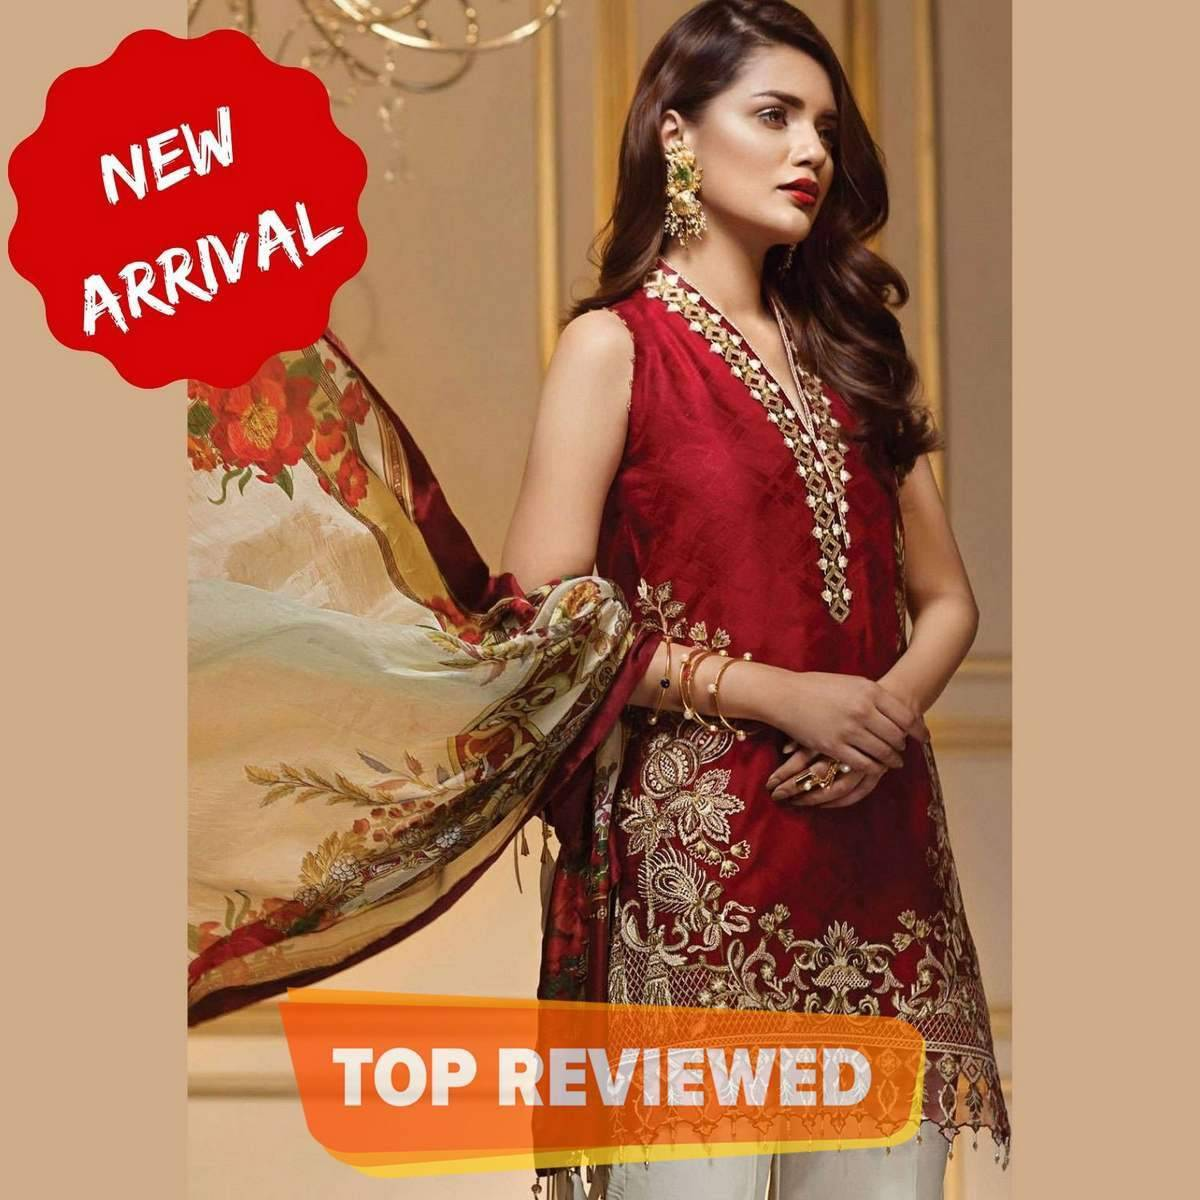 Rose Red Lawn Summer Collection 2021 - 3PC Embroidered Unstiched Lawn Suits for Women